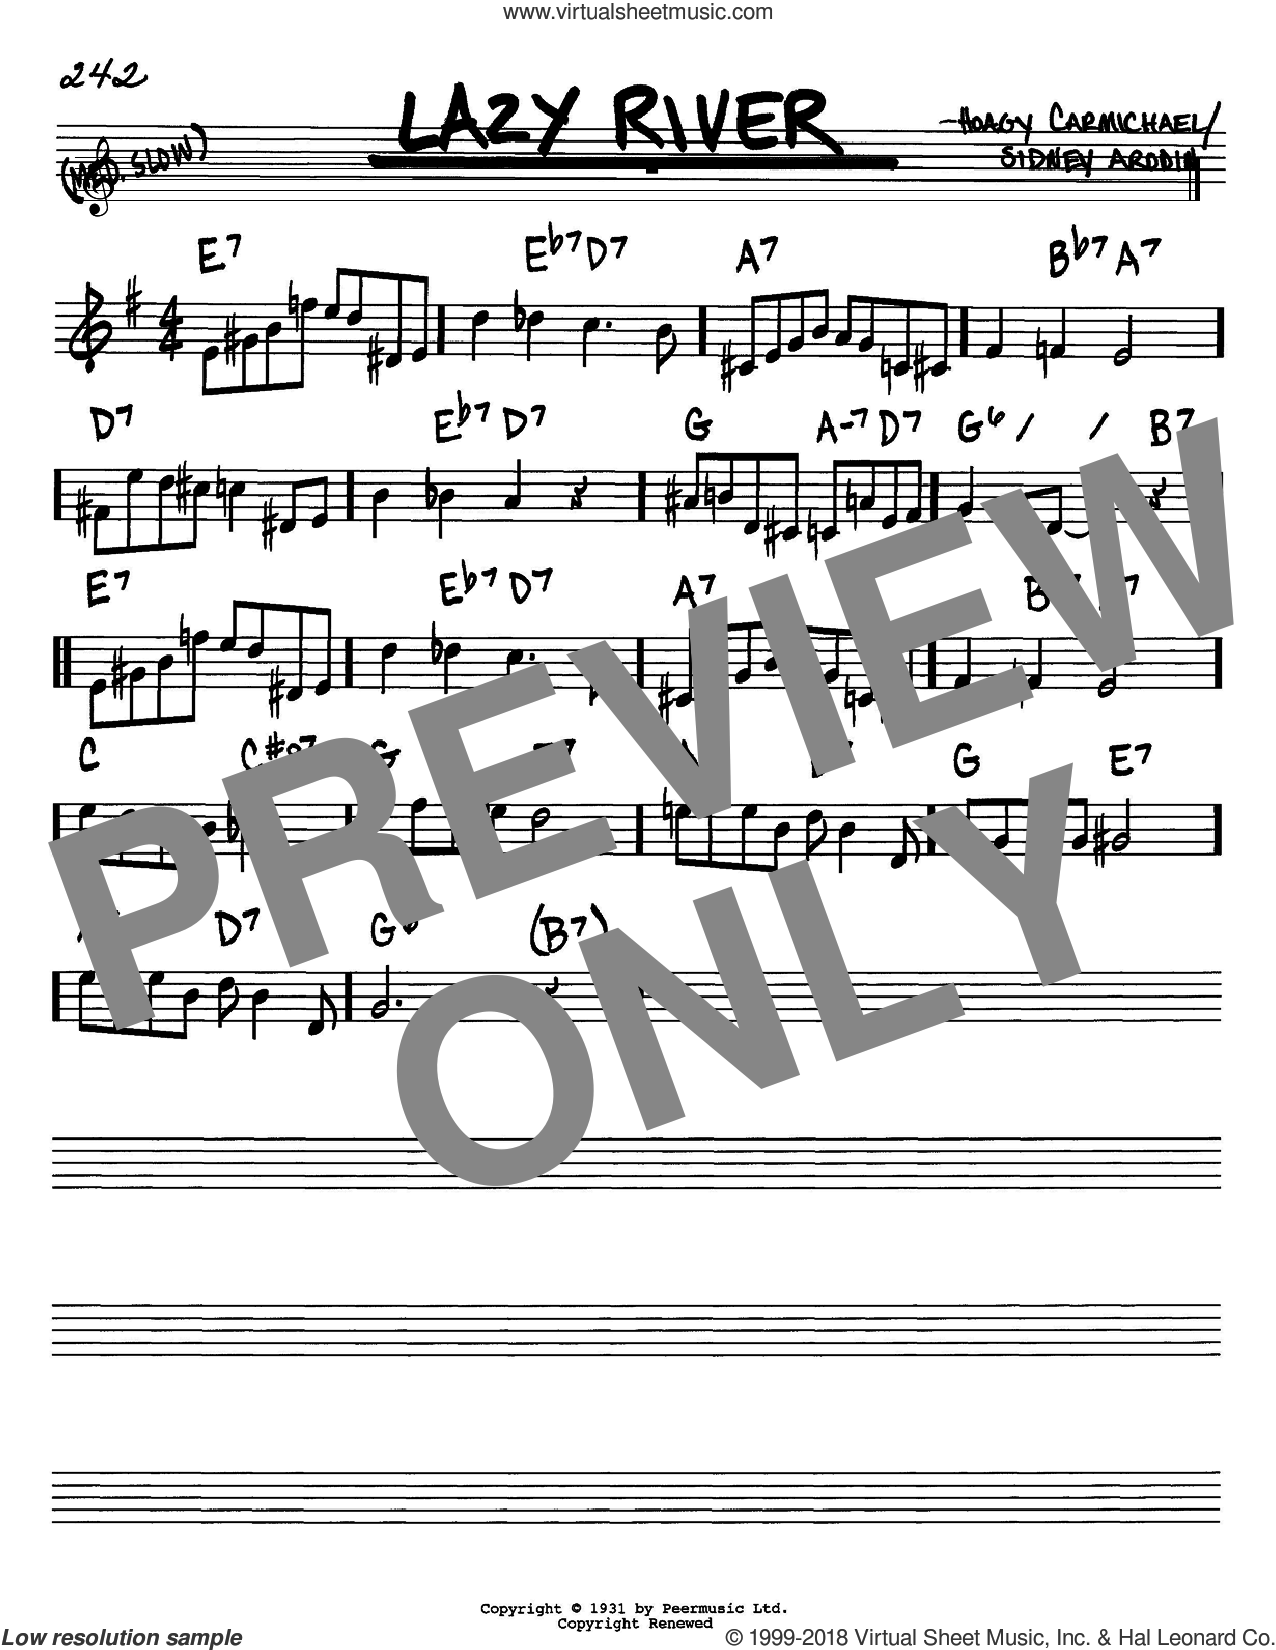 Lazy River sheet music for voice and other instruments (in Bb) by Hoagy Carmichael, Bobby Darin and Sidney Arodin, intermediate skill level